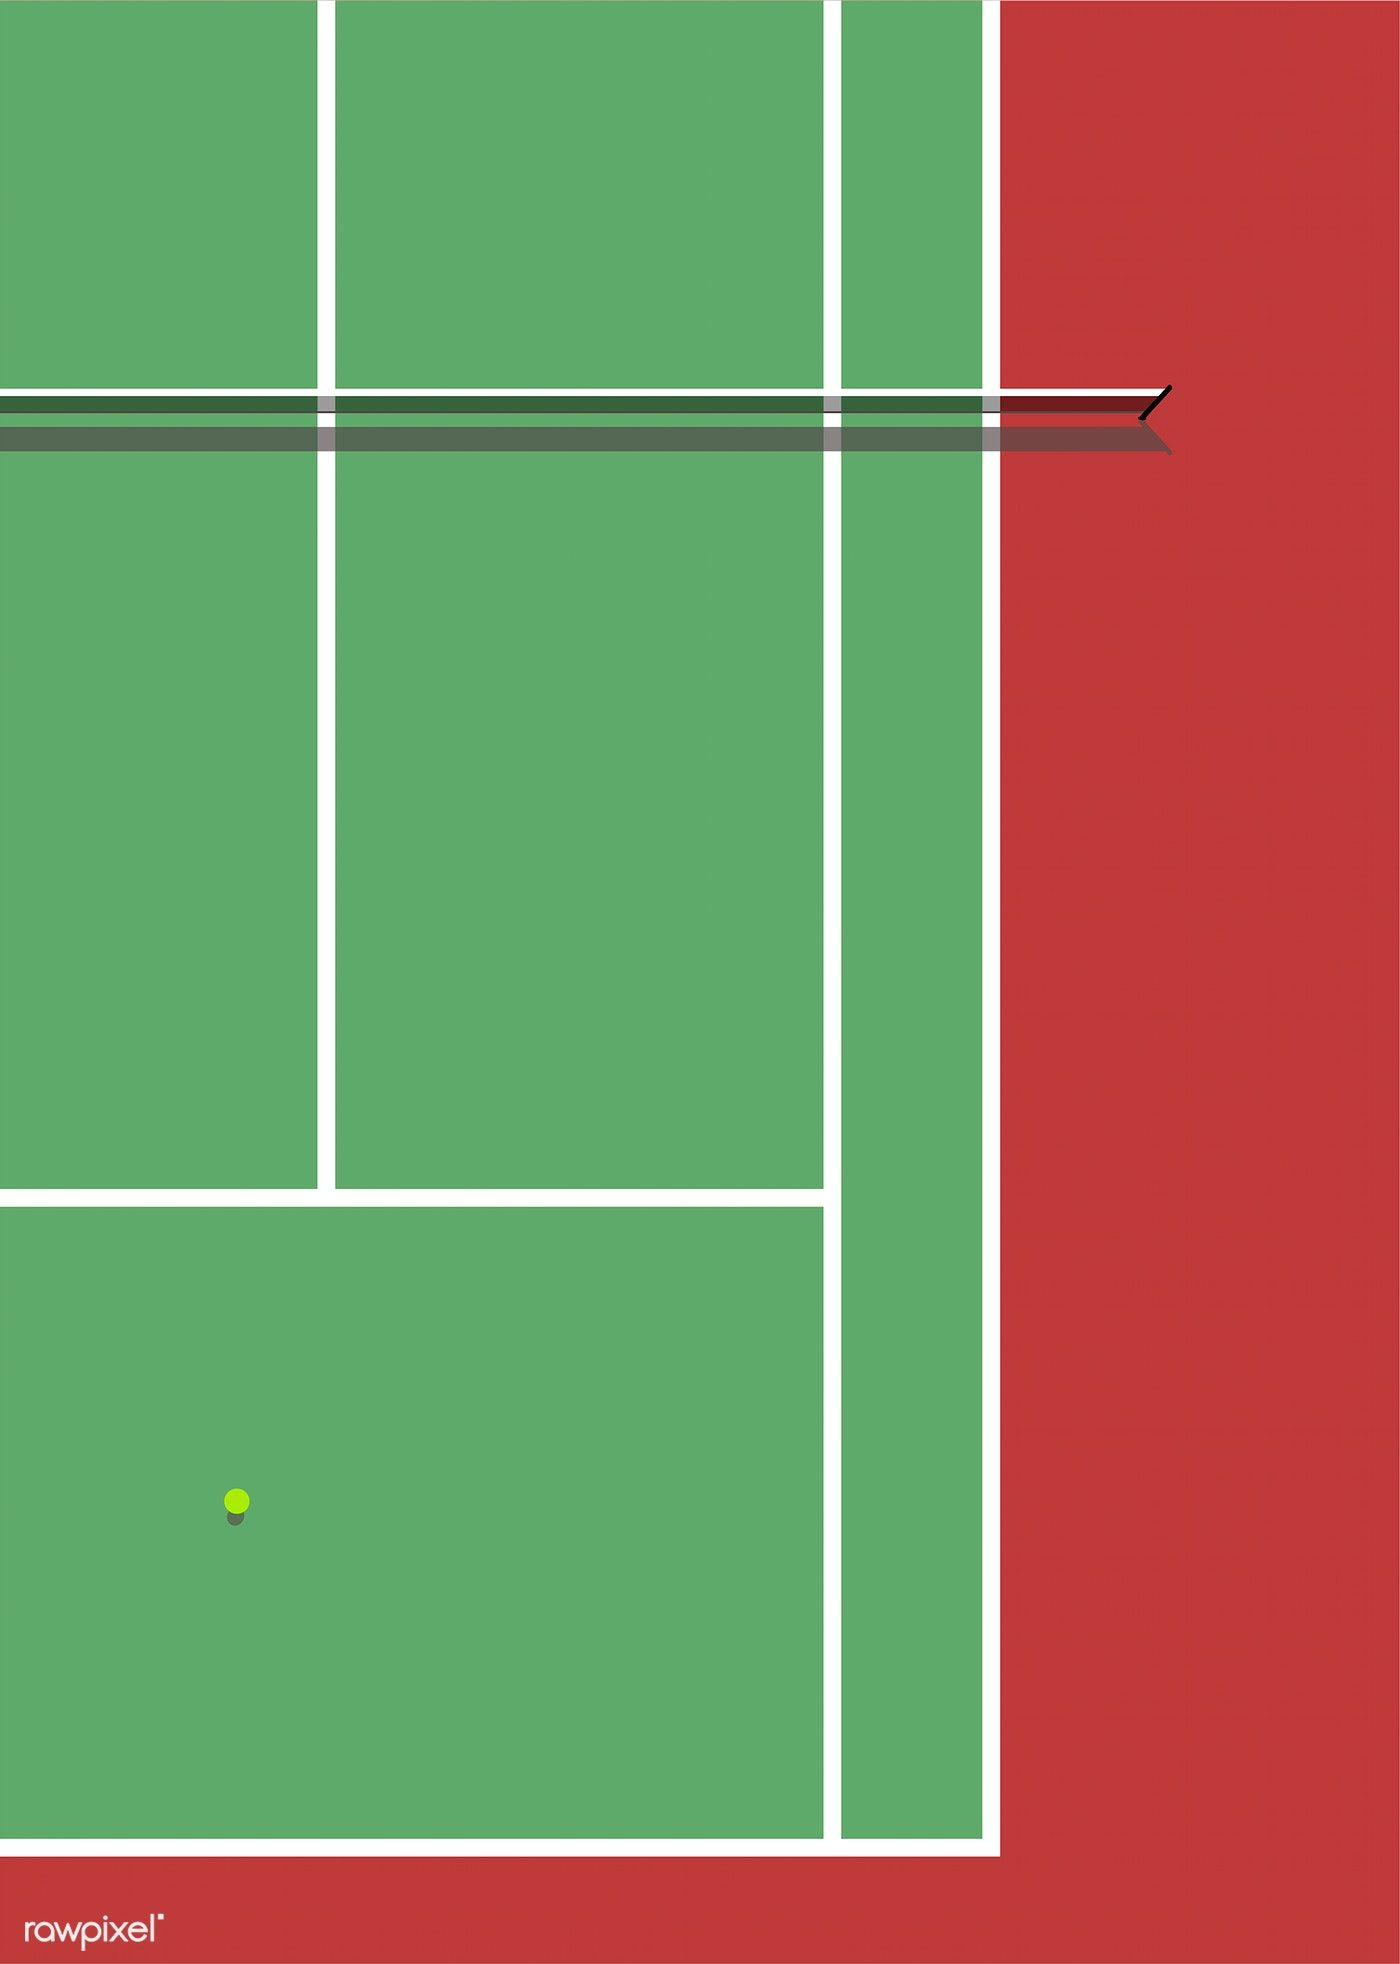 Aerial View Of A Tennis Court Free Image By Rawpixel Com Aew In 2020 Tennis Court Tennis Aerial View